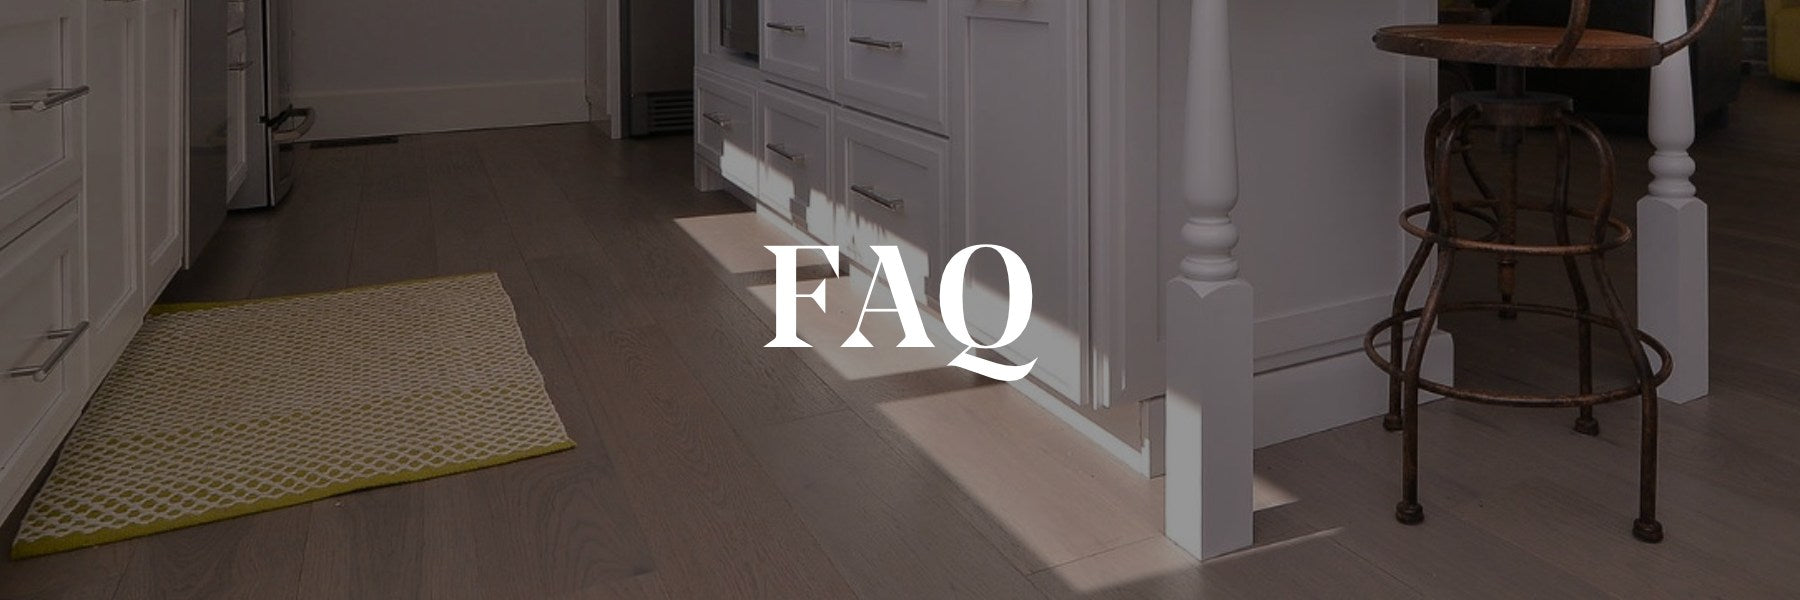 Gaylord Hardwood Flooring FAQ